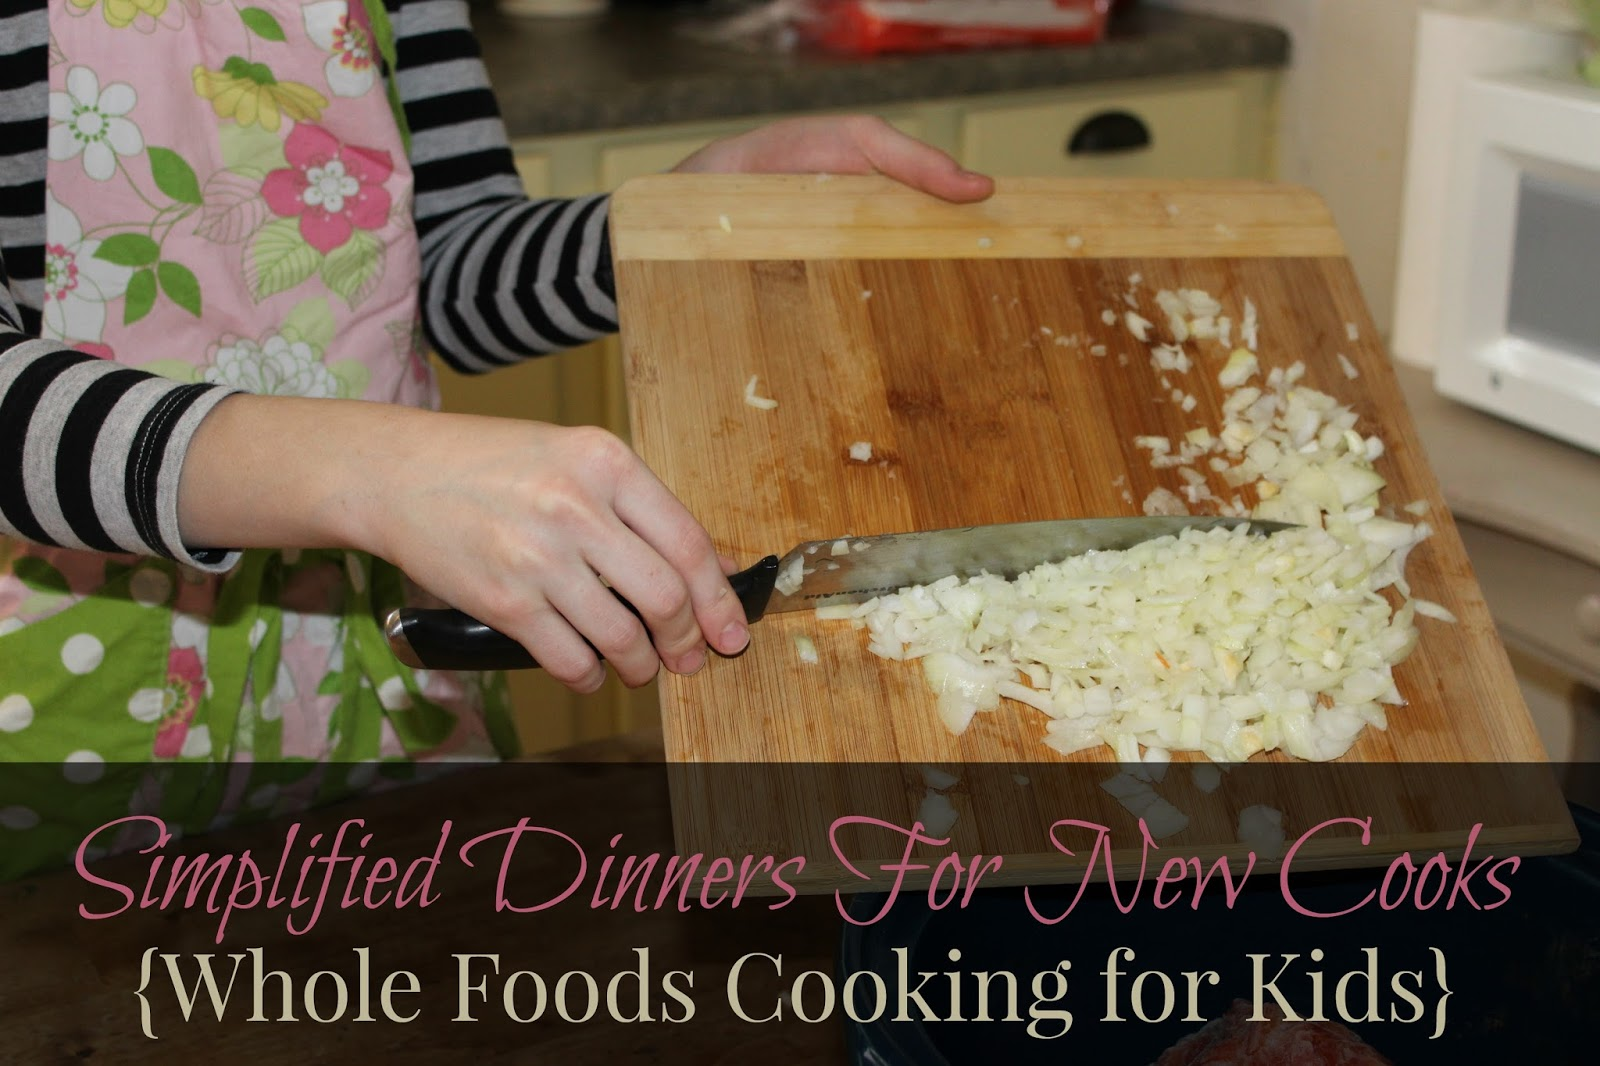 The unlikely homeschool simplified dinners for new cooks whole simplified dinners for new cooks whole foods cooking for kids forumfinder Images